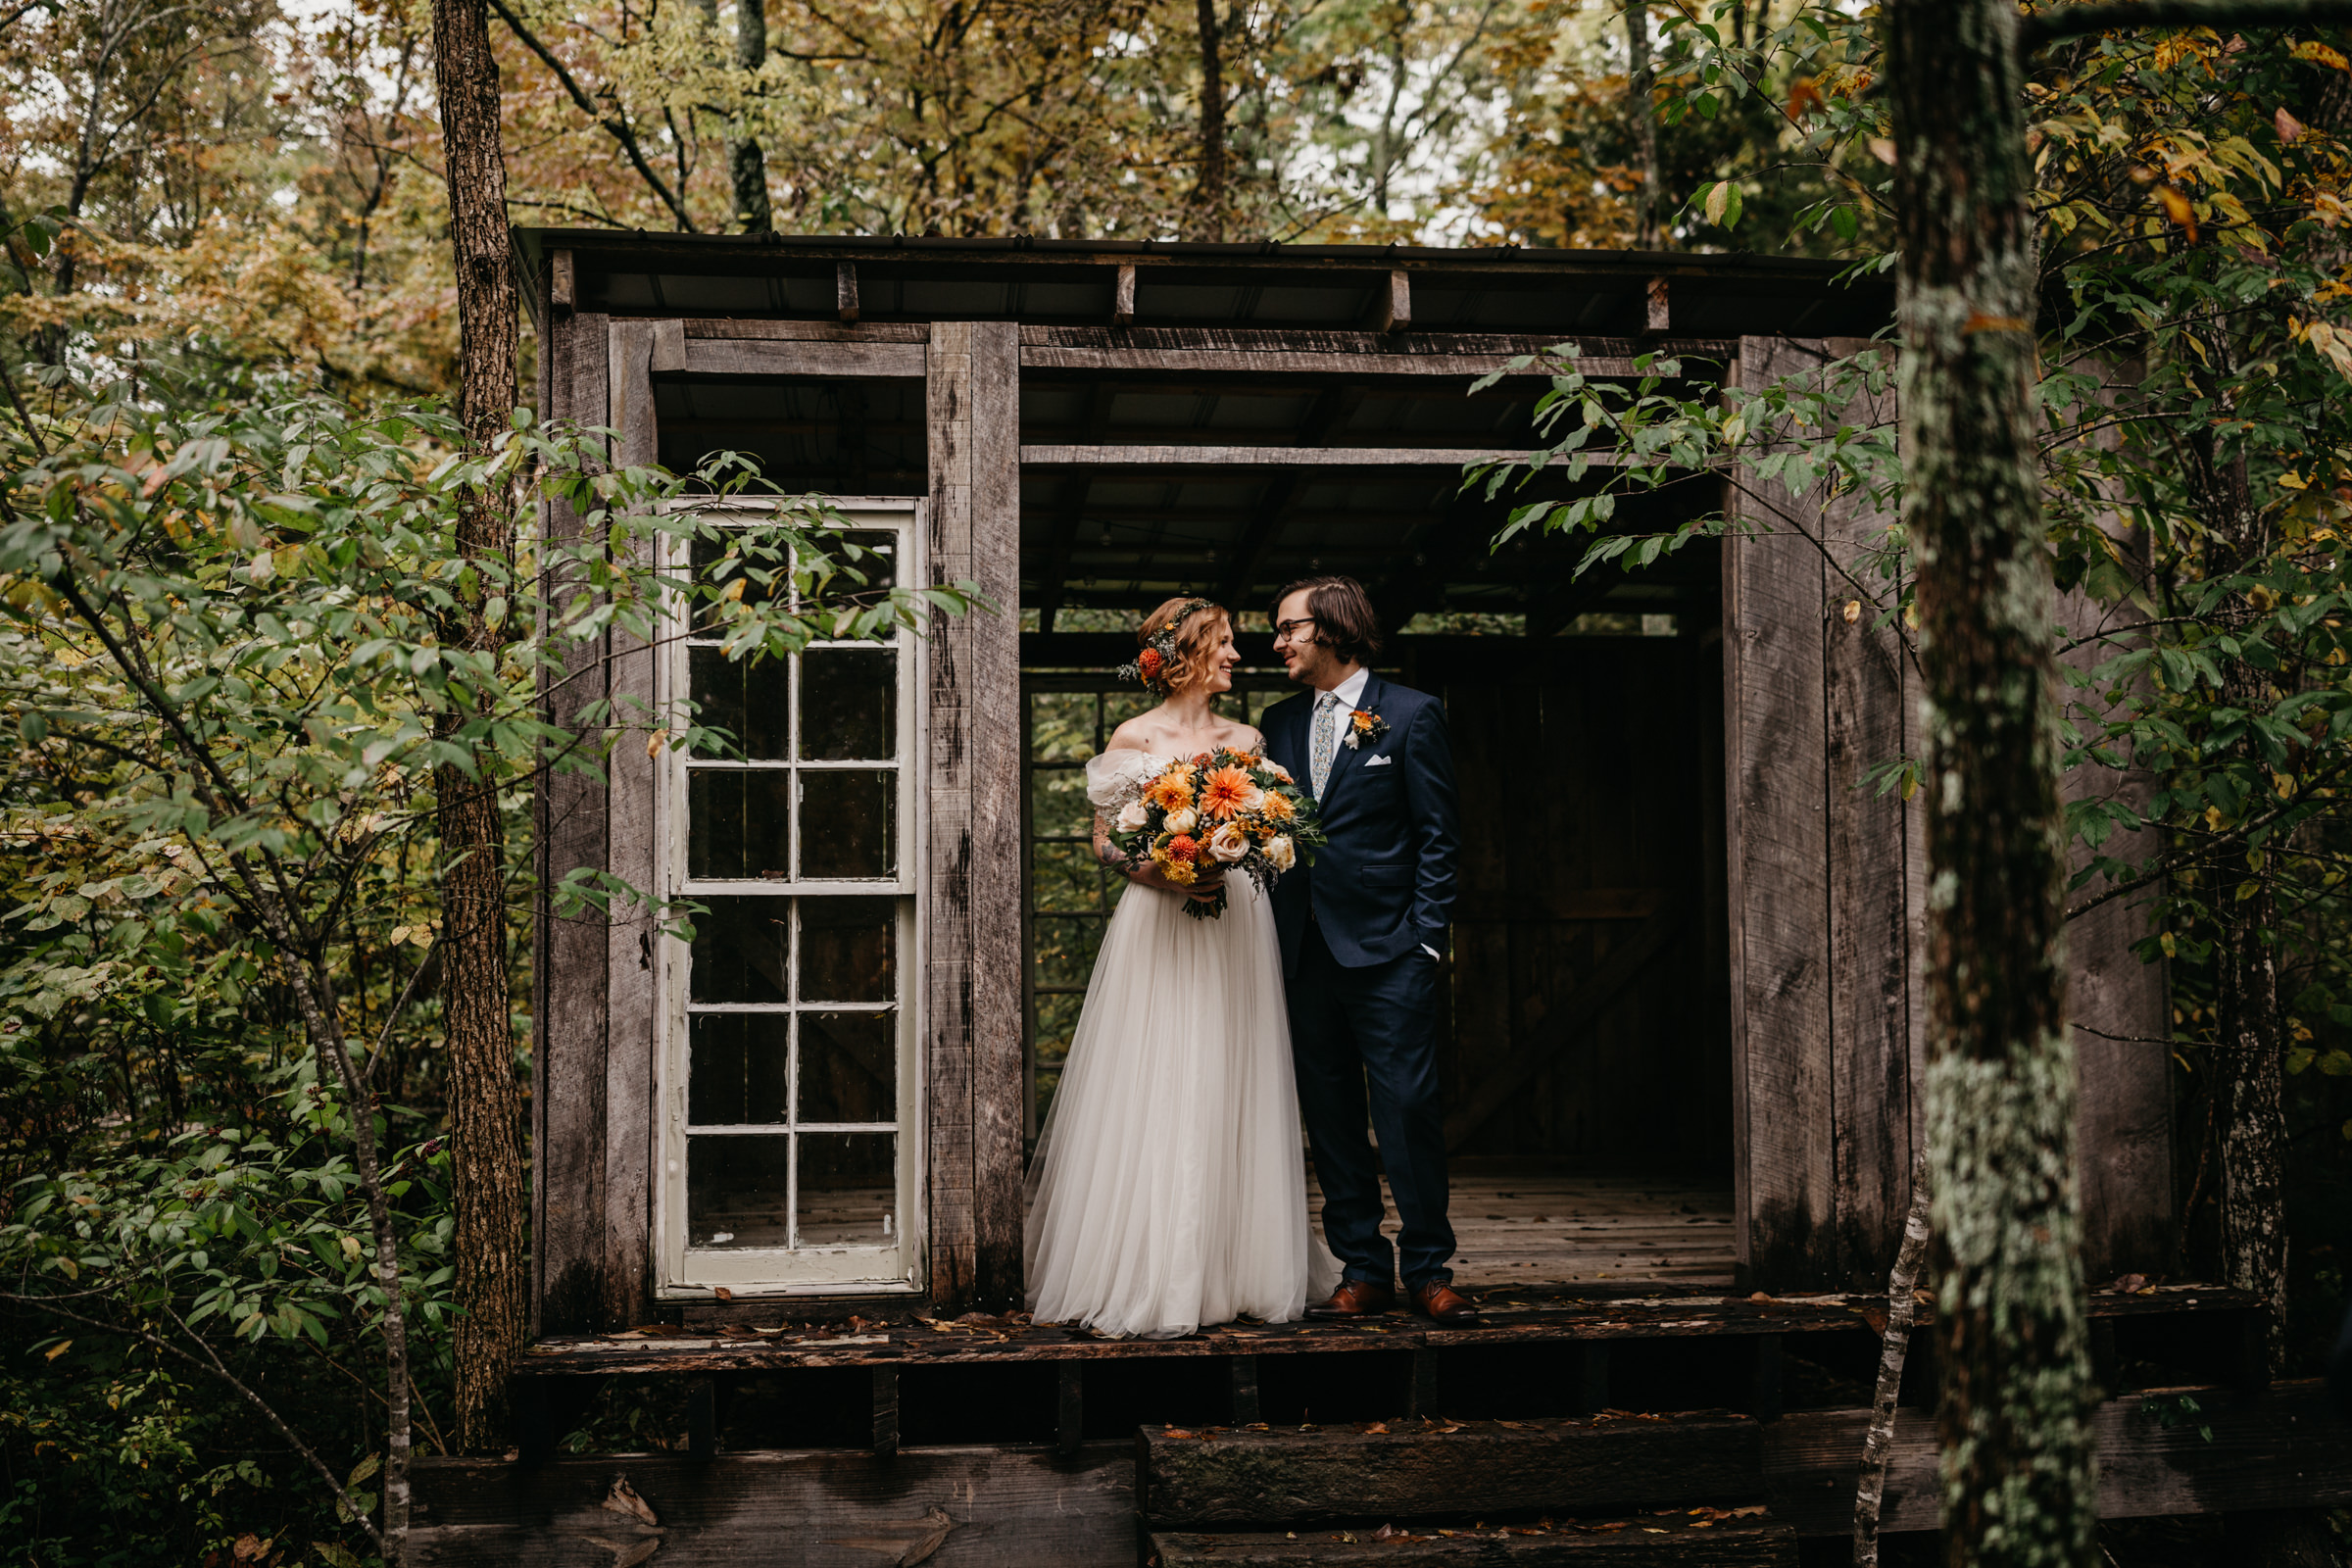 Wedding packages - 2020 wedding day packages currently start at $3000Elopement photography starts at $1400 (limited to true elopements & weddings 25 or fewer guests)